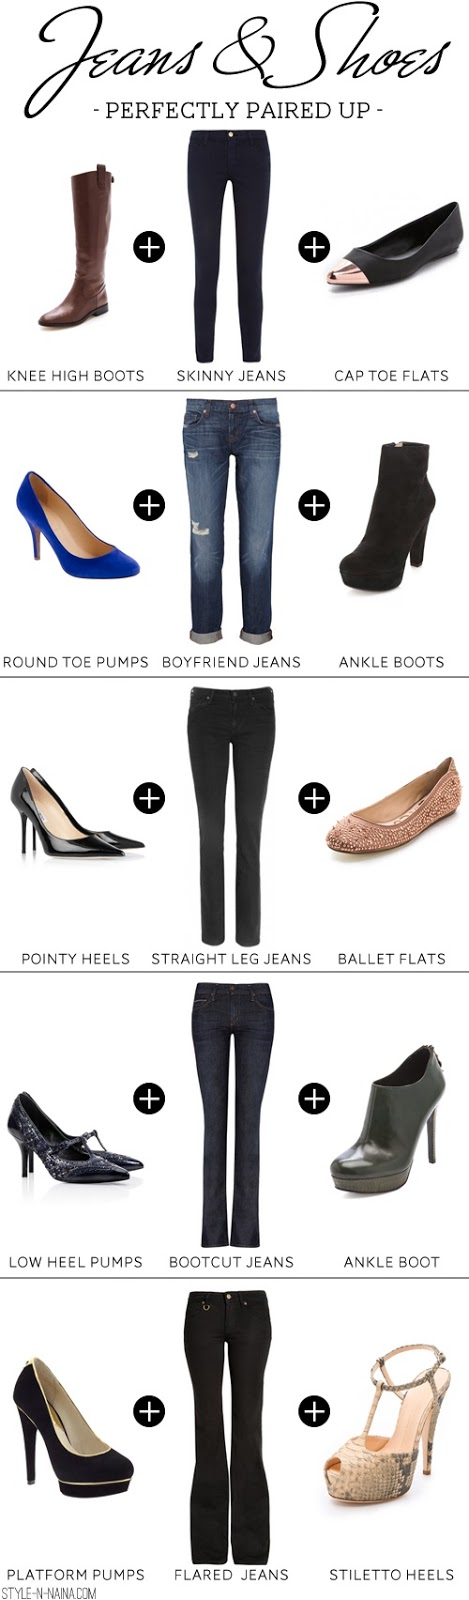 Shoes to wear with boot-cut jeans fashion Jeans and shoes ...